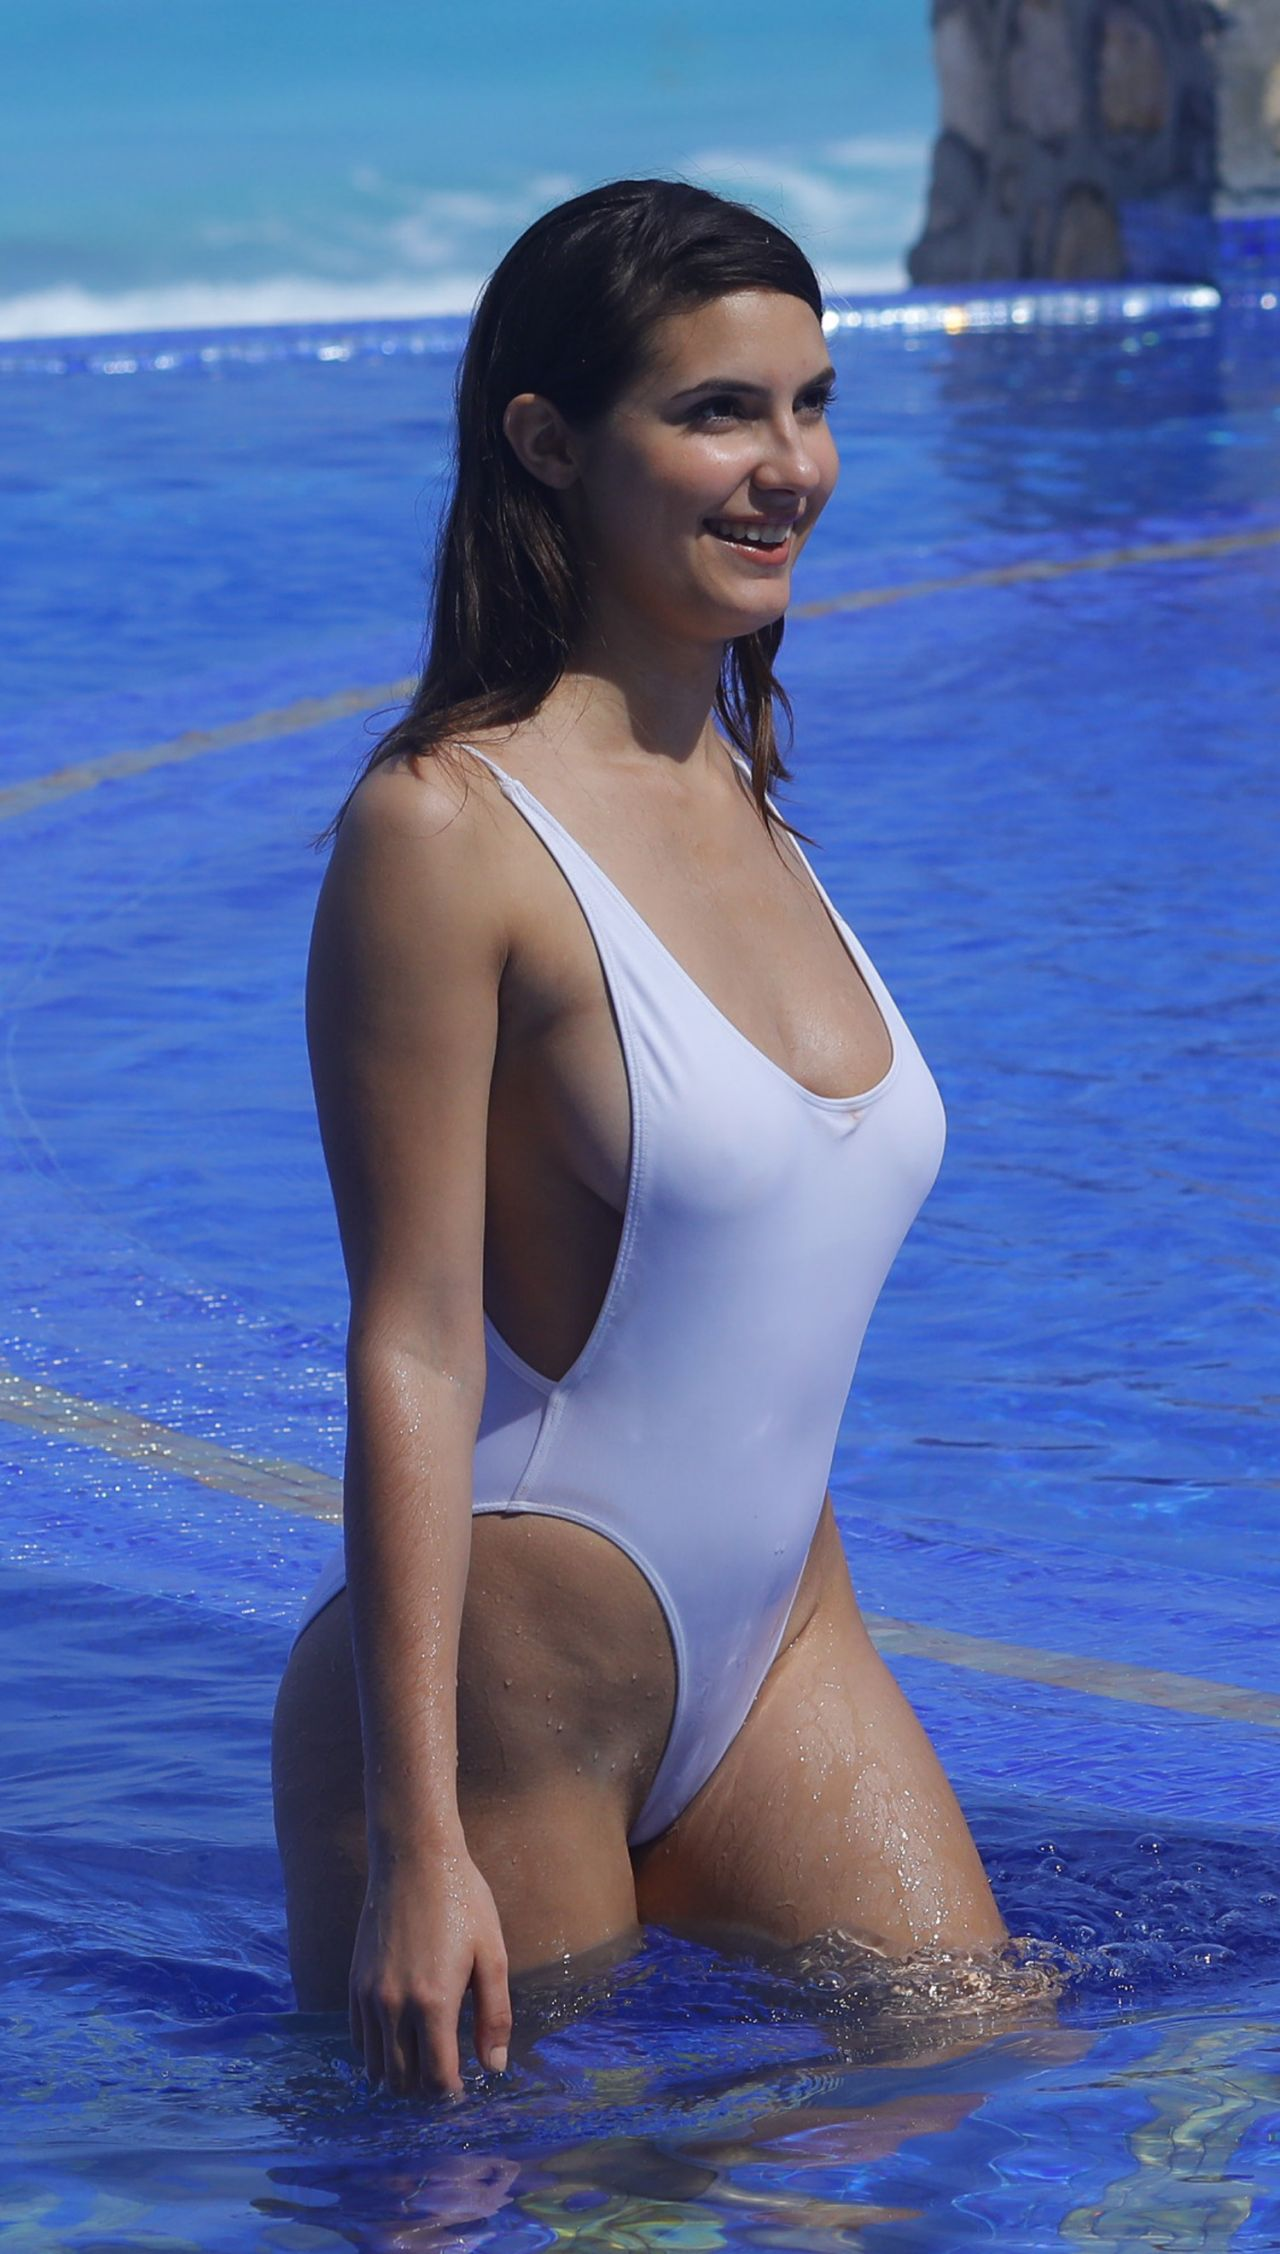 Tao Wickrath Shows Off Her Curves In White Swimsuit In